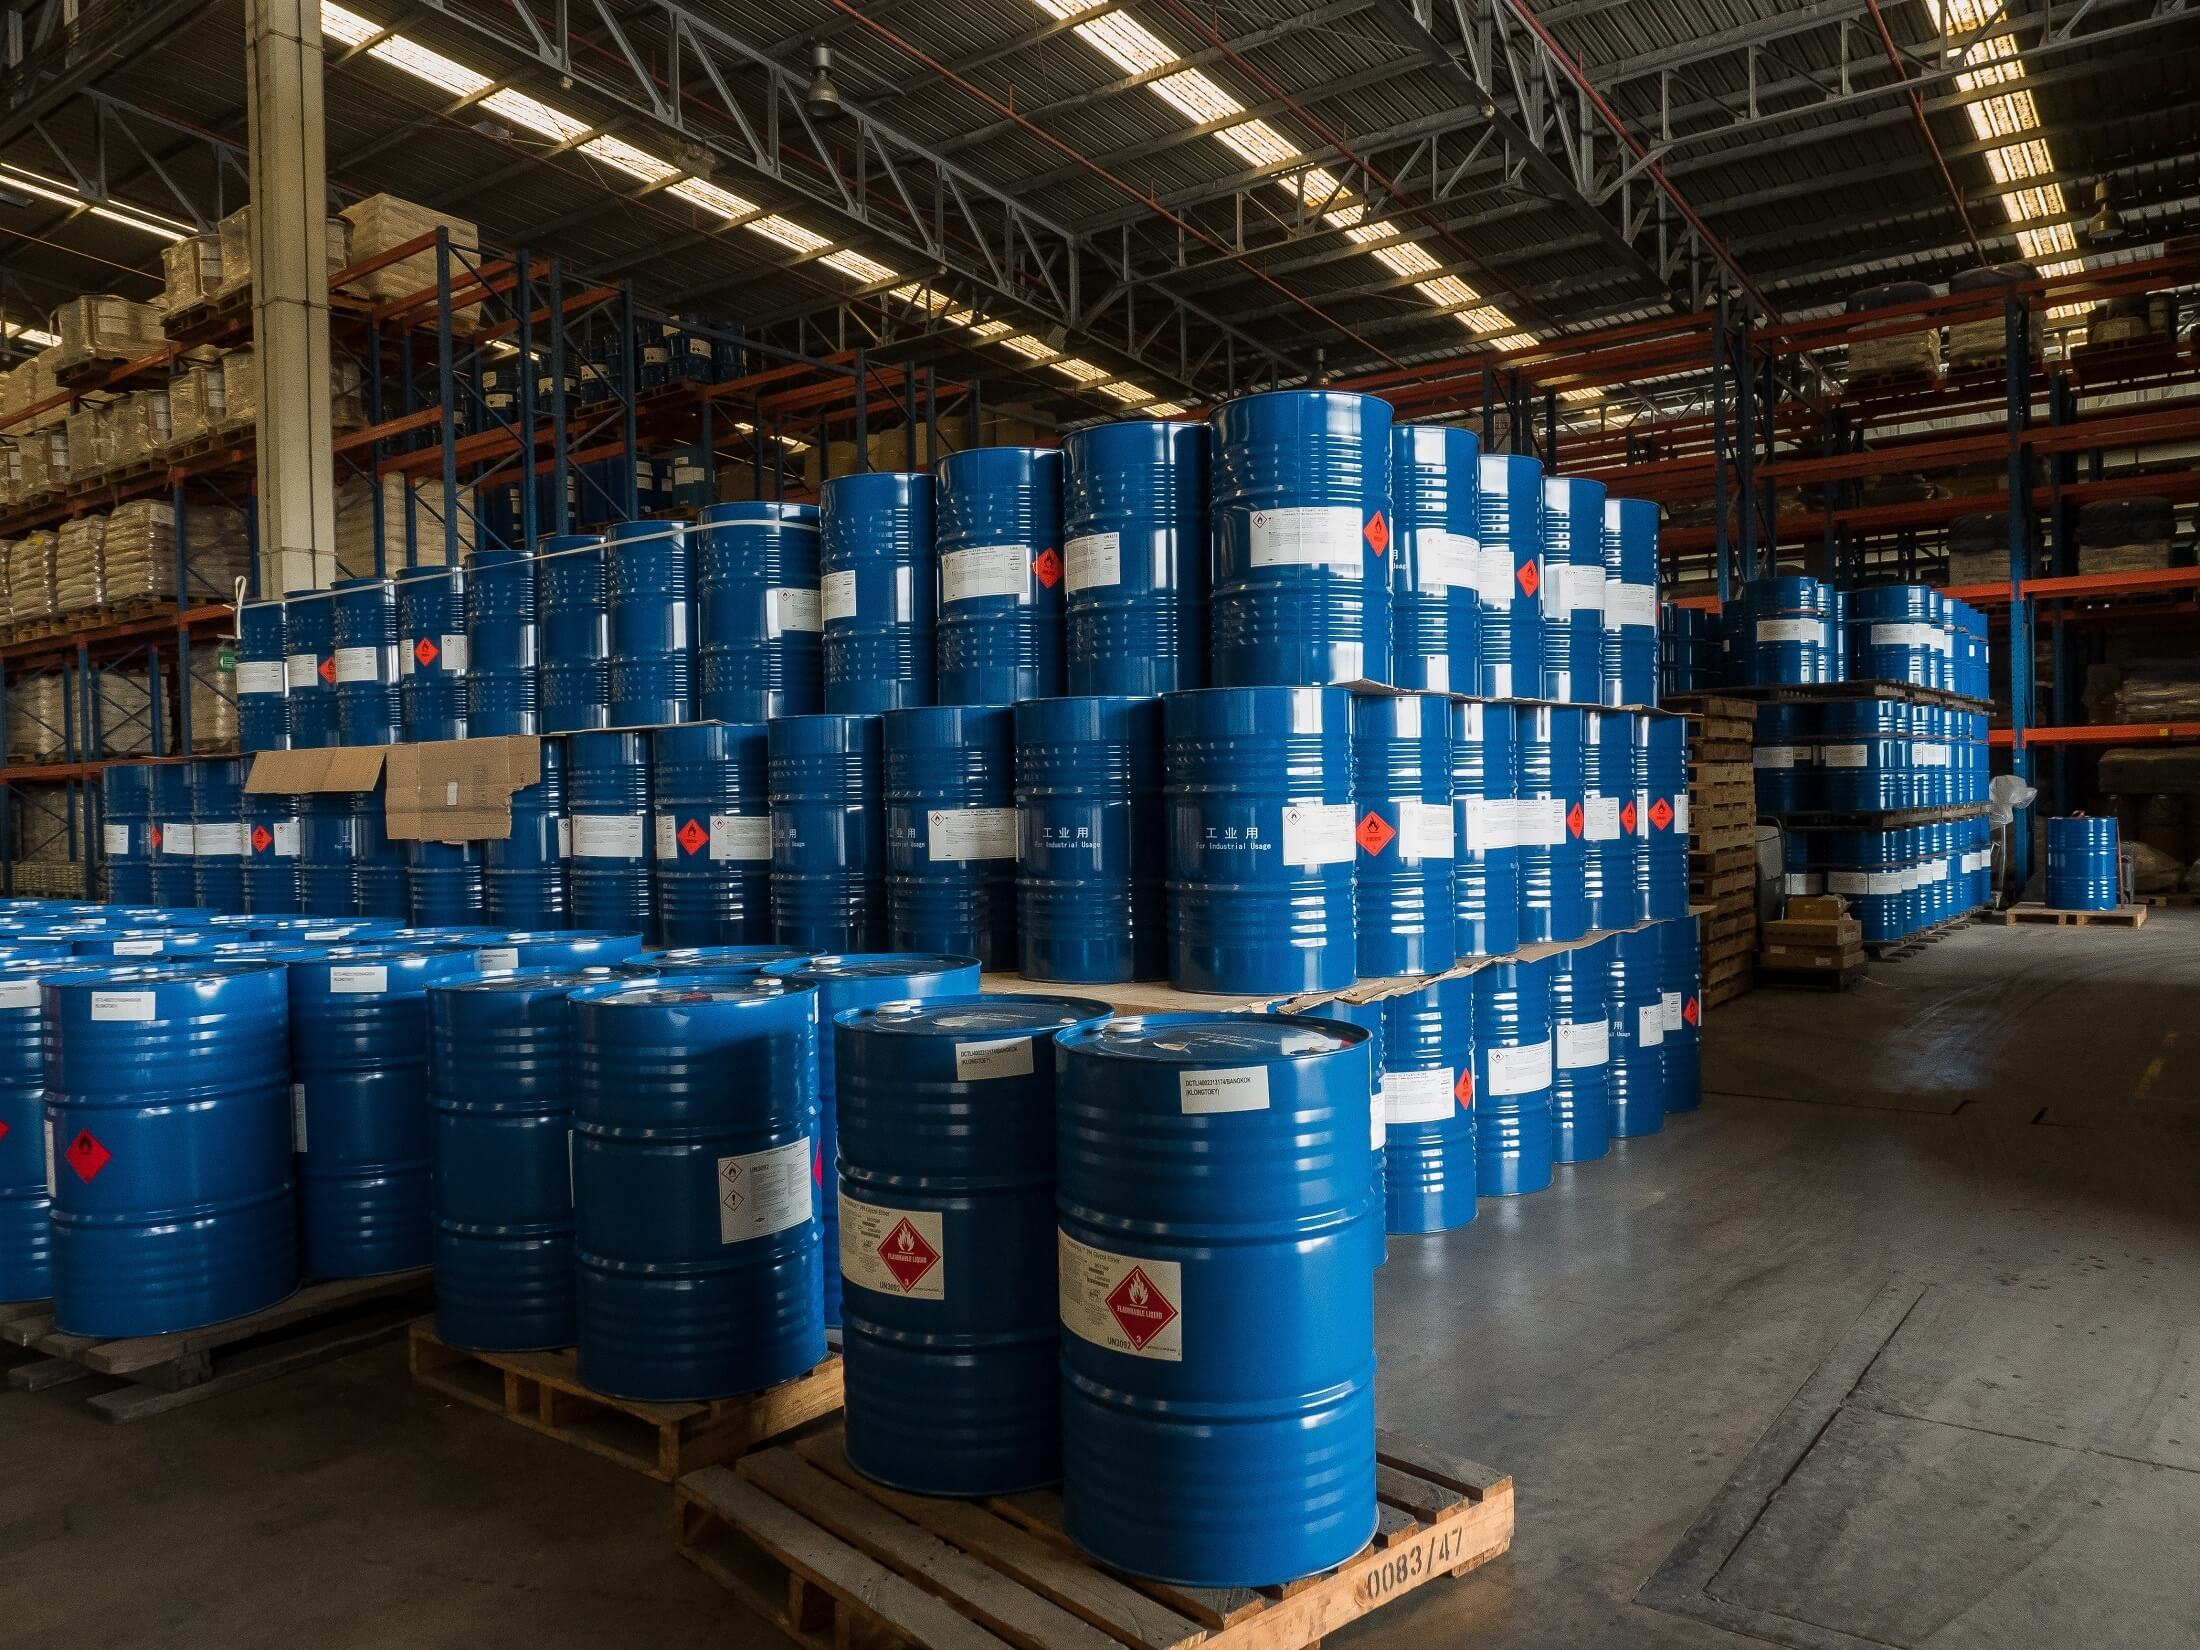 How to identify chemical hazards in the workplace